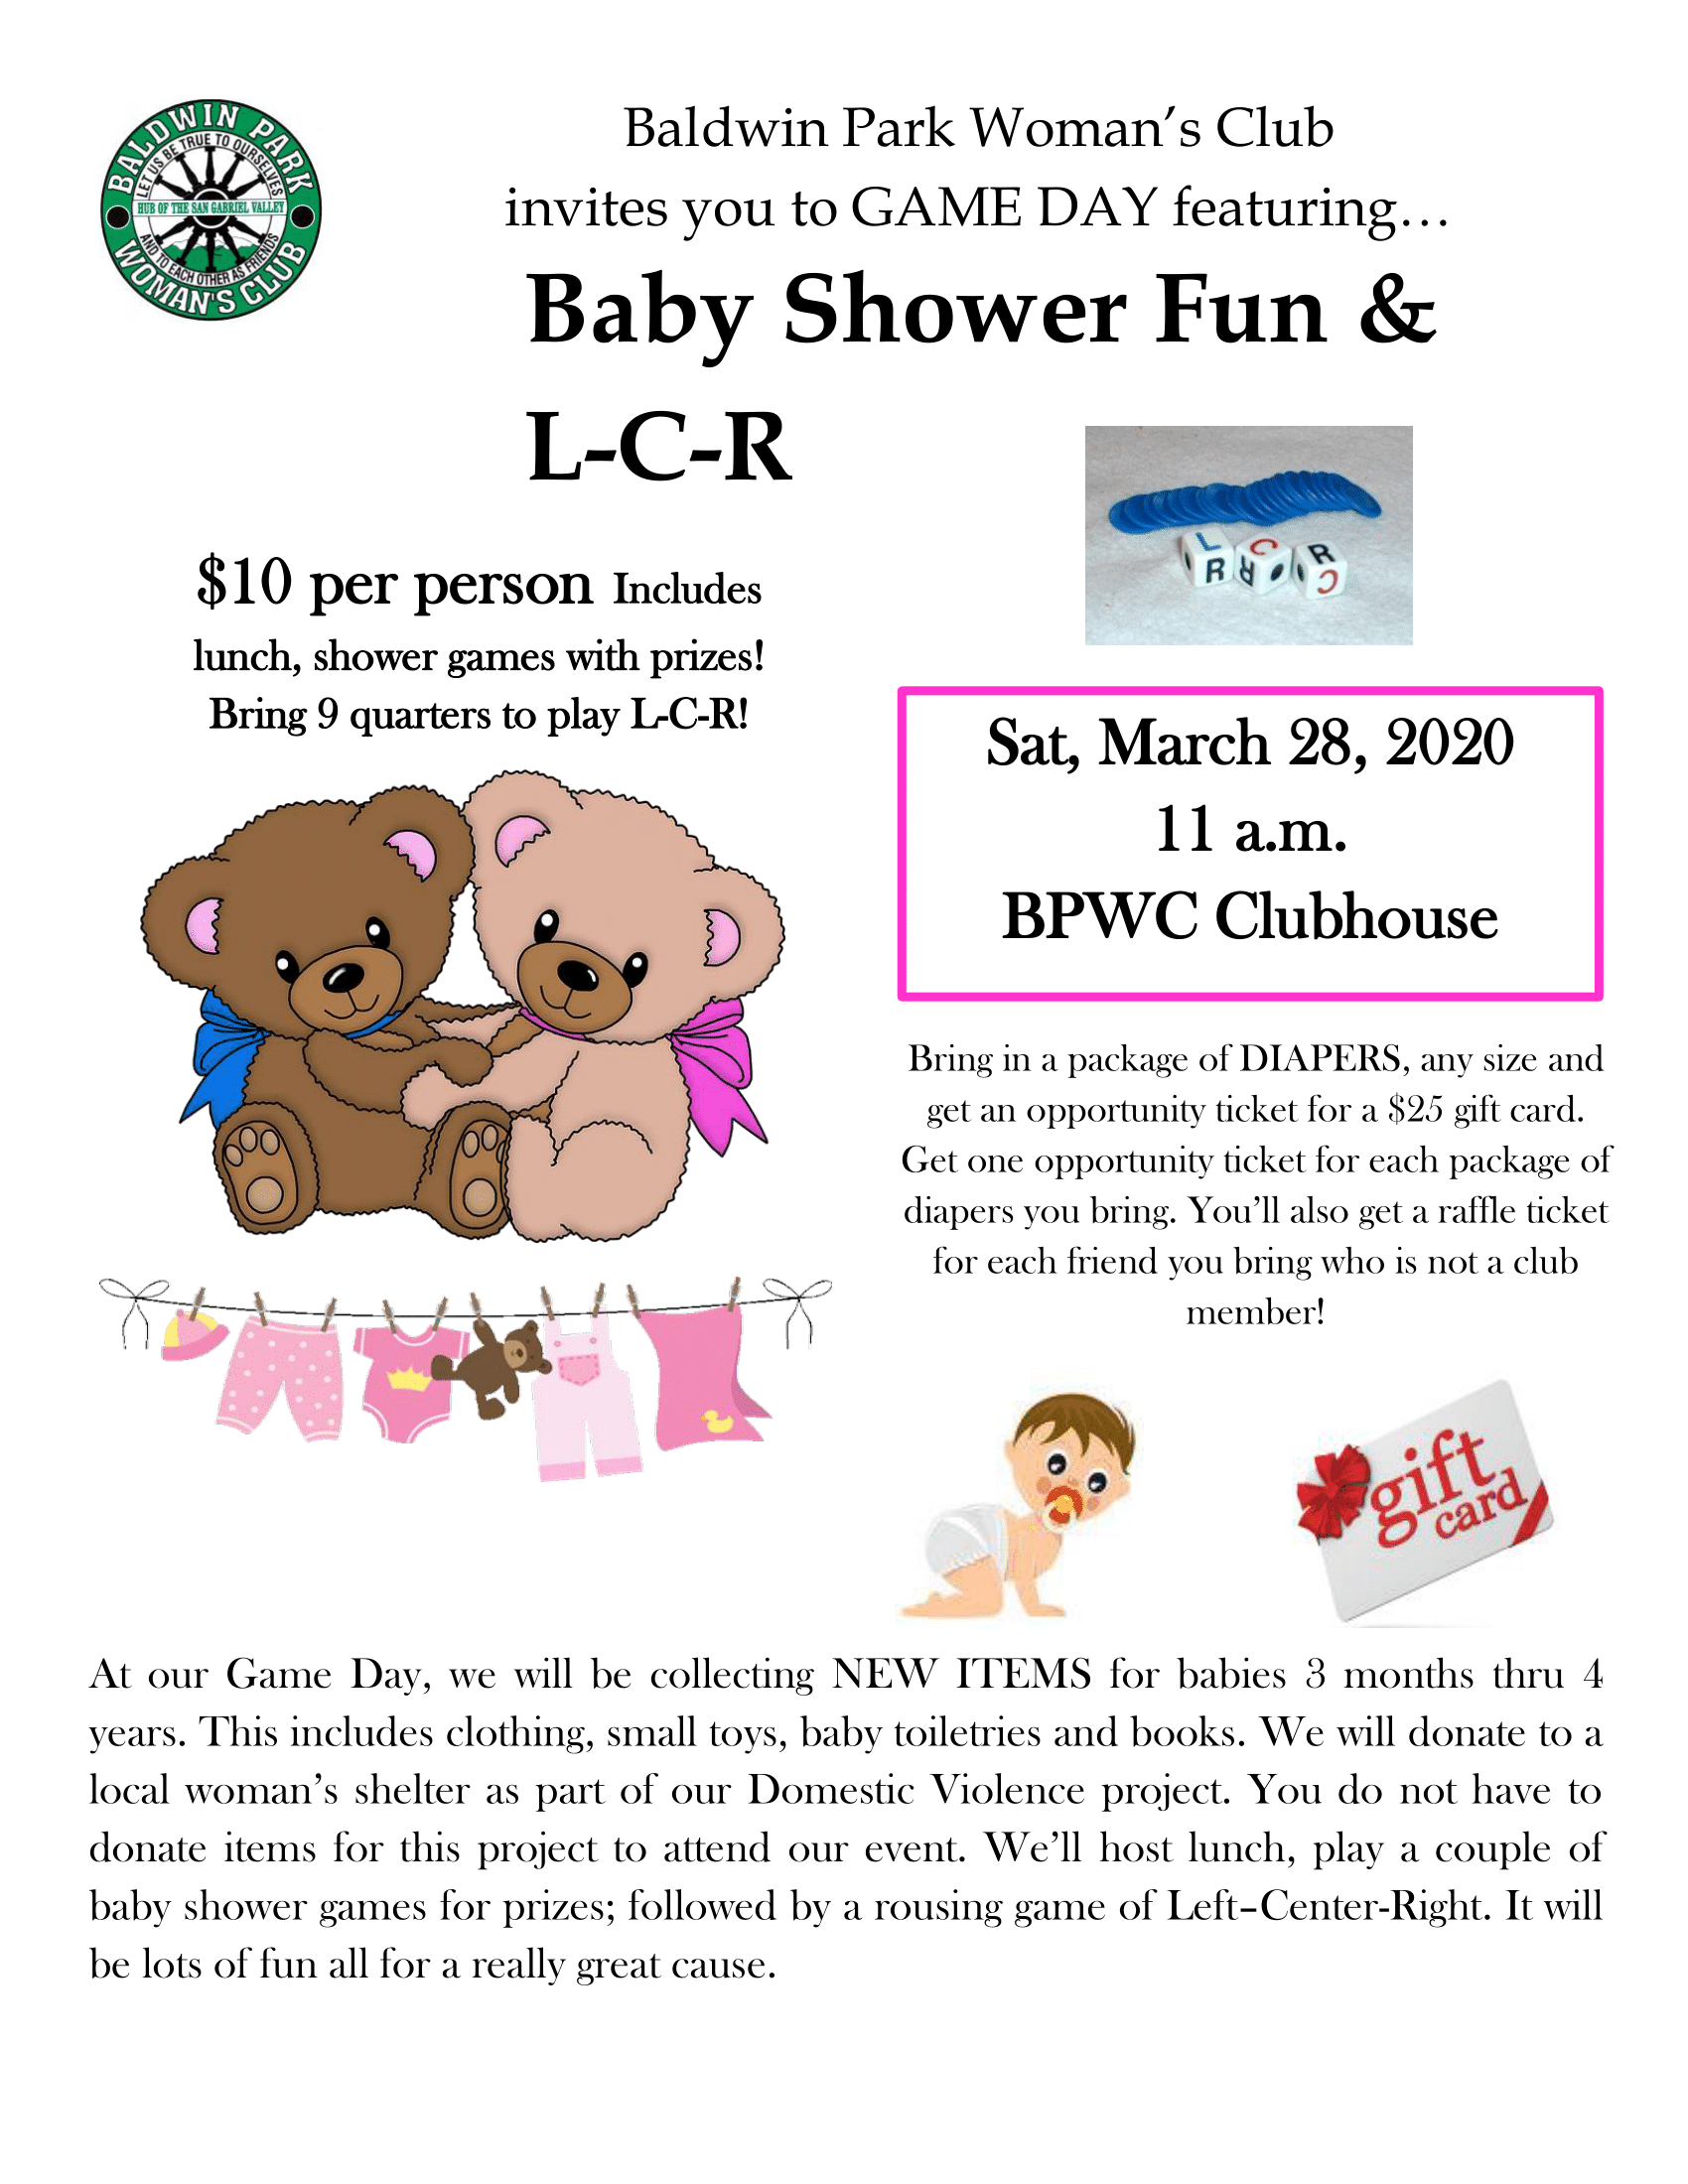 Have fun at Baldwin Park Woman's Club Game Day Baby Shower and lunch fundraiser to benefit our local shelters.  You will receive an opportunity drawing ticket for a $25 gift card for each package of diapers donated and each friend you bring. New clothing, small toys, baby toiletries and books are also welcome donations.  Enjoy lunch and baby shower games with prizes for a $10 donation.  Bring 9 quarters to play Left, Center, Right after baby shower games.  Join us 11am Saturday March 28 at Baldwin Park Woman's Club, 3817 Baldwin Park Boulevard.